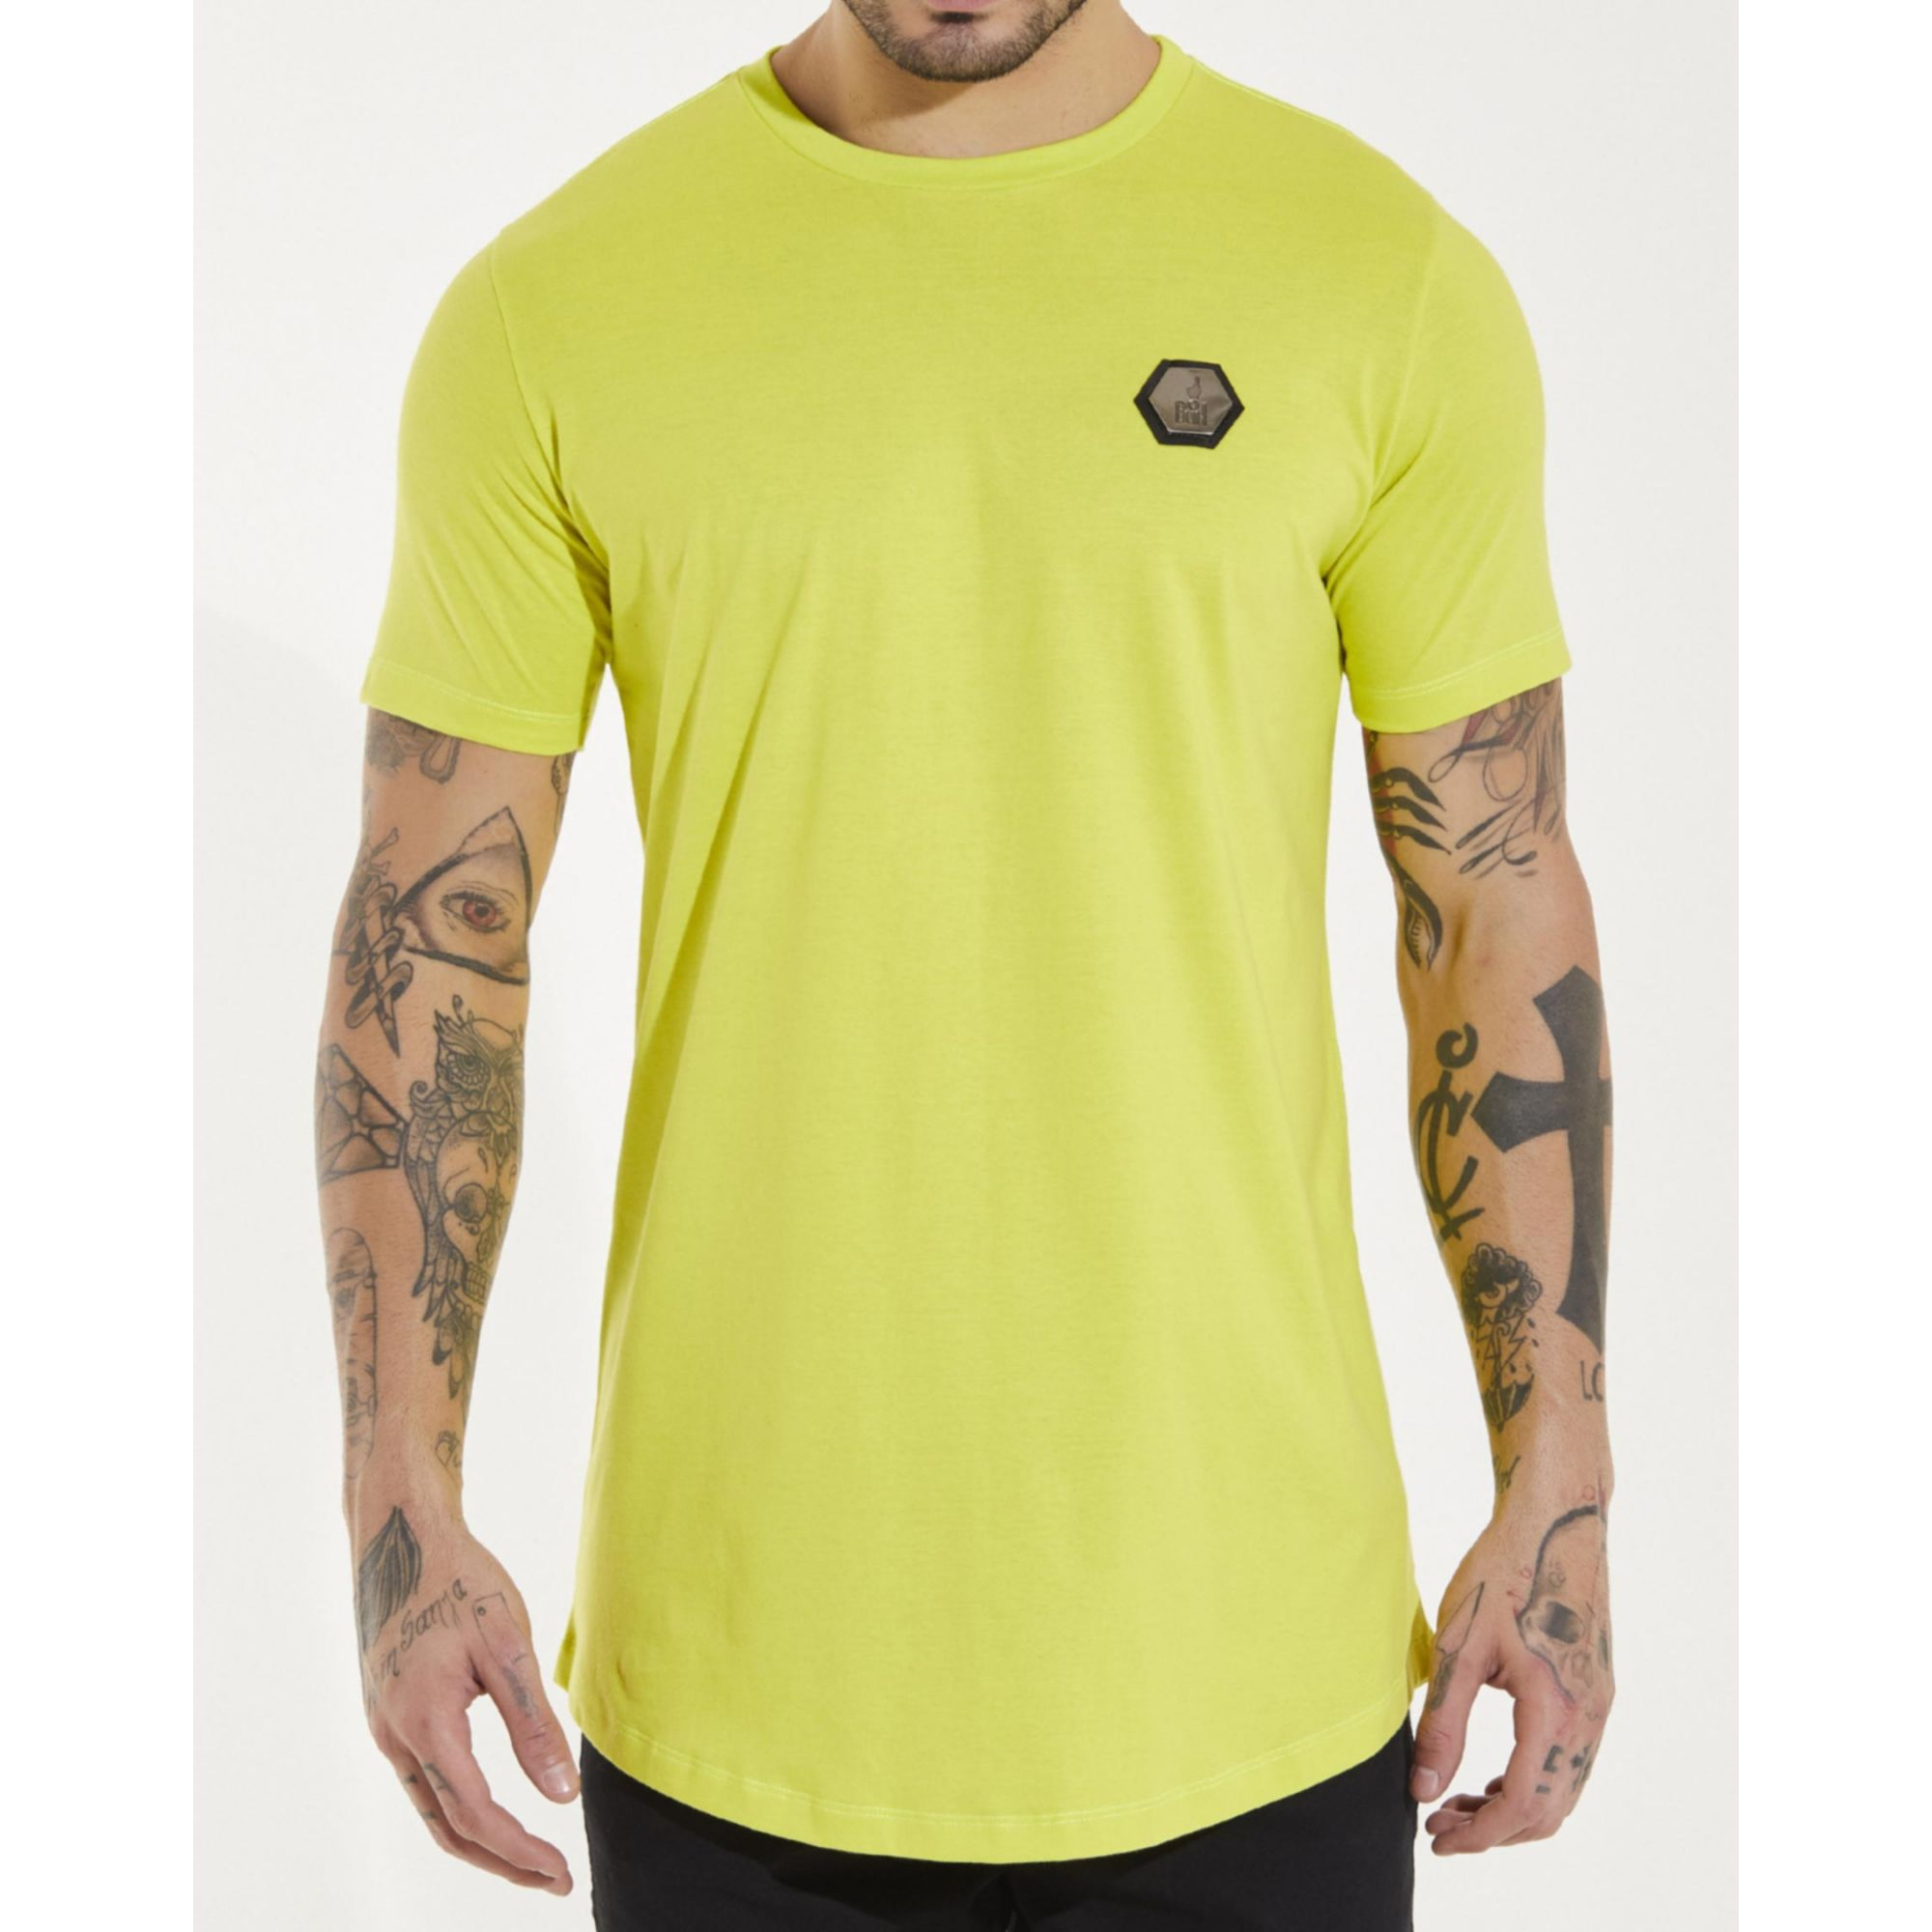 Camiseta Buh Plaquinha Yellow